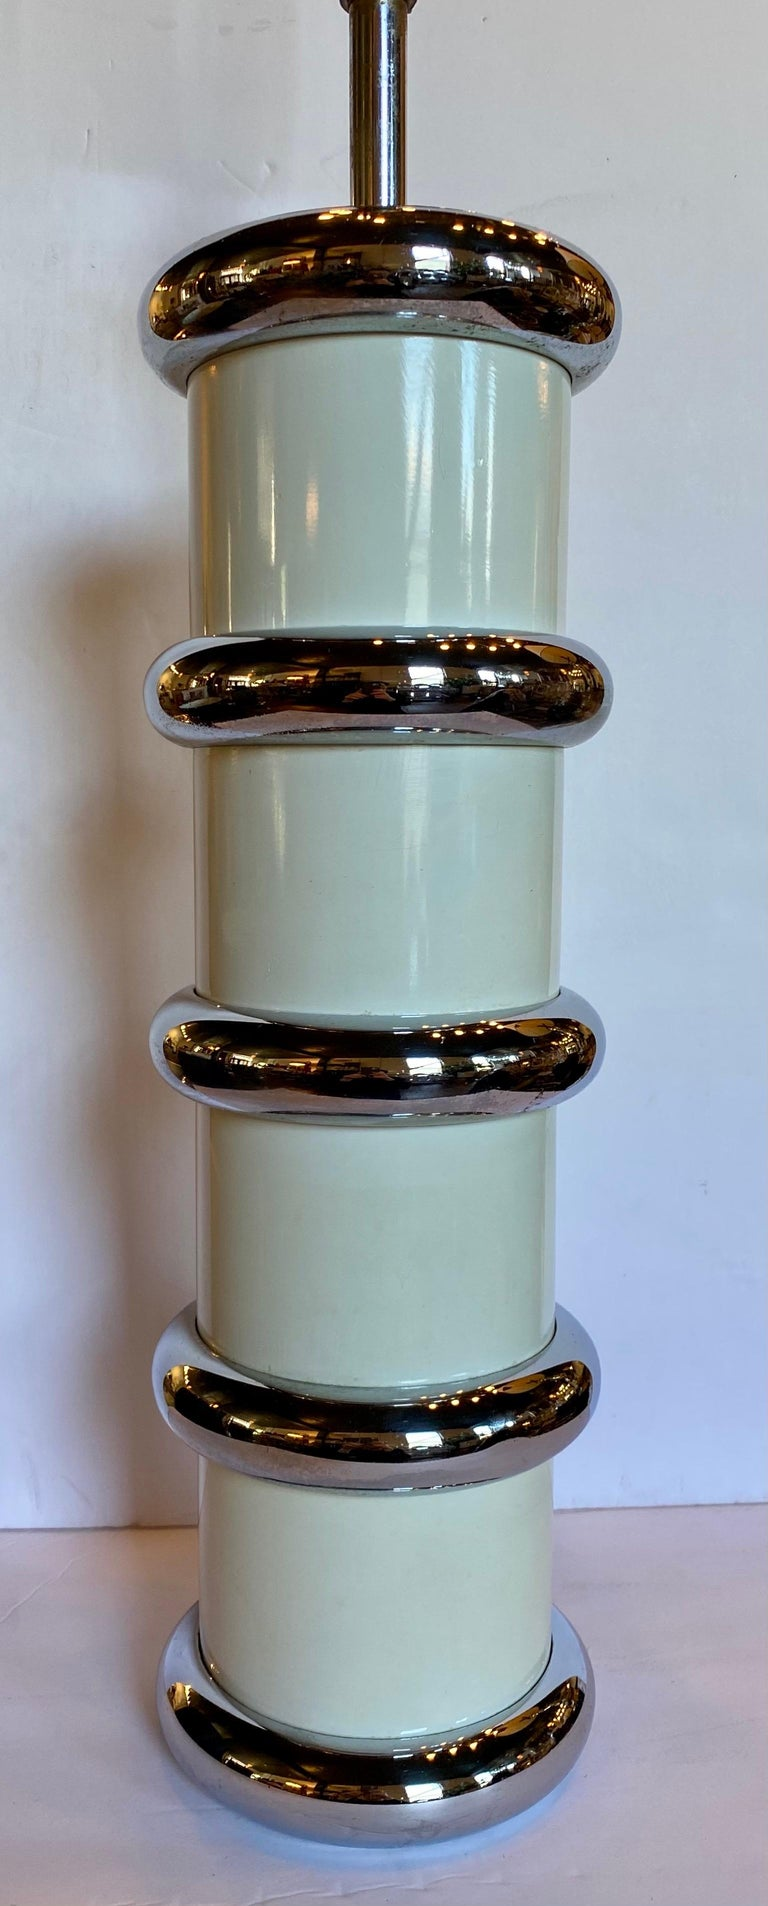 Mid-Century Modern Modern Karl Springer Style Chrome Ring Table Lamp by Mutual Sunset, 1970s For Sale